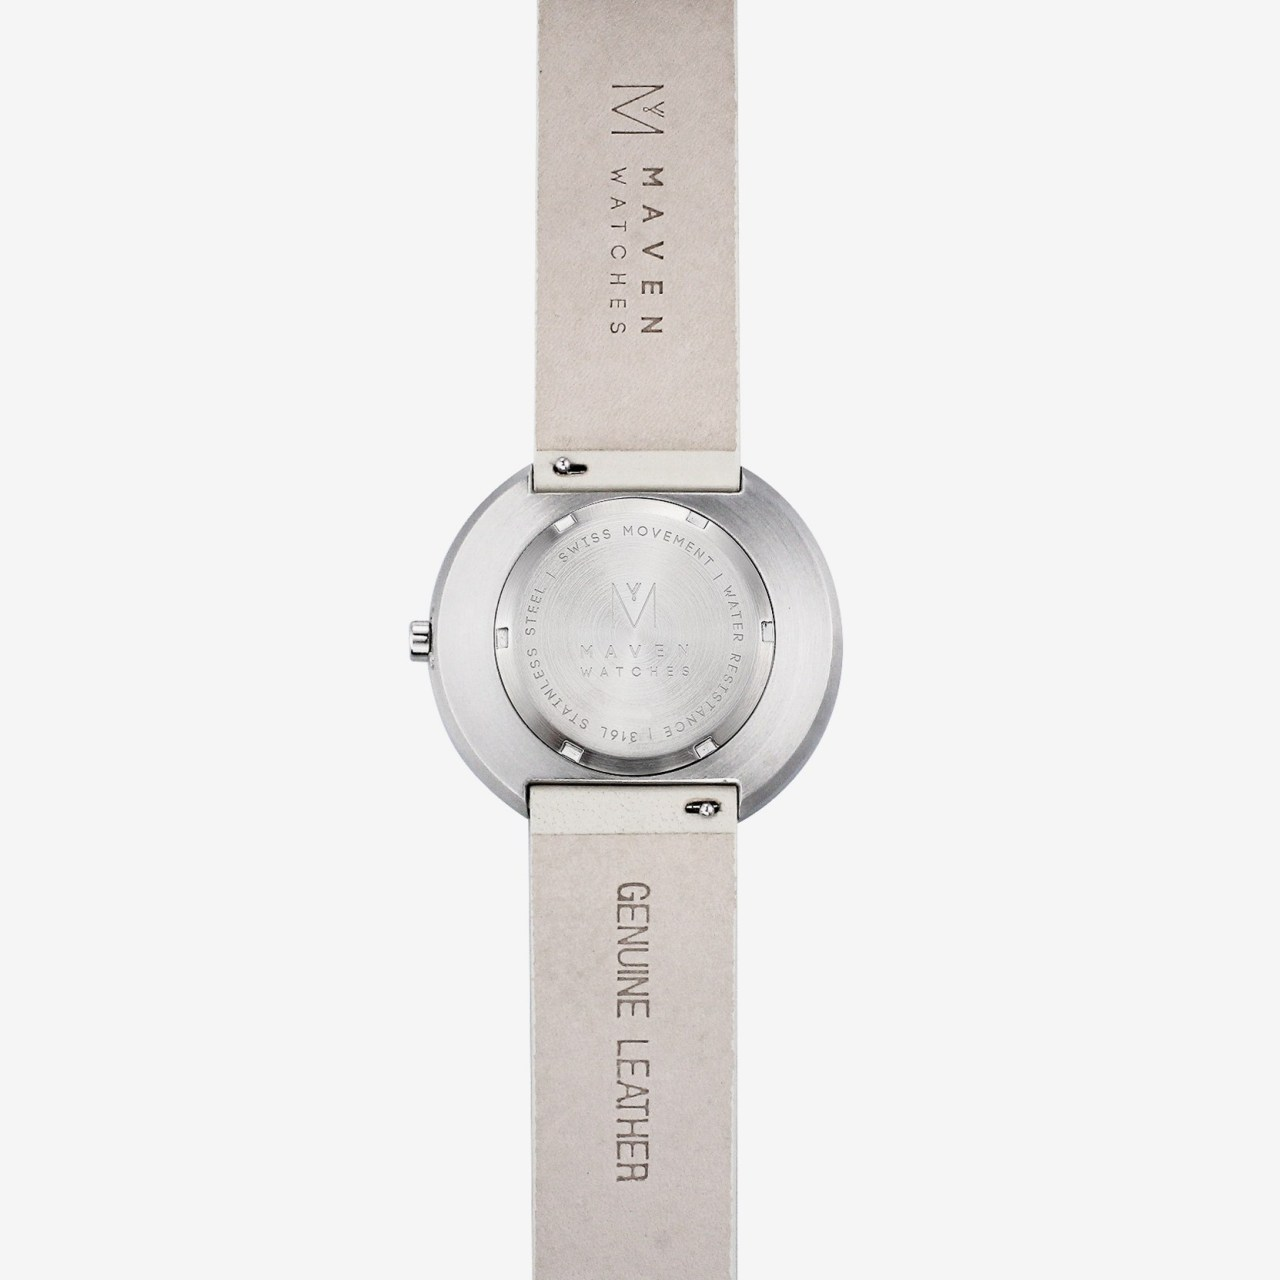 Maven Watches Back Casing. Engraving. Personal Watches. Personalised watches.